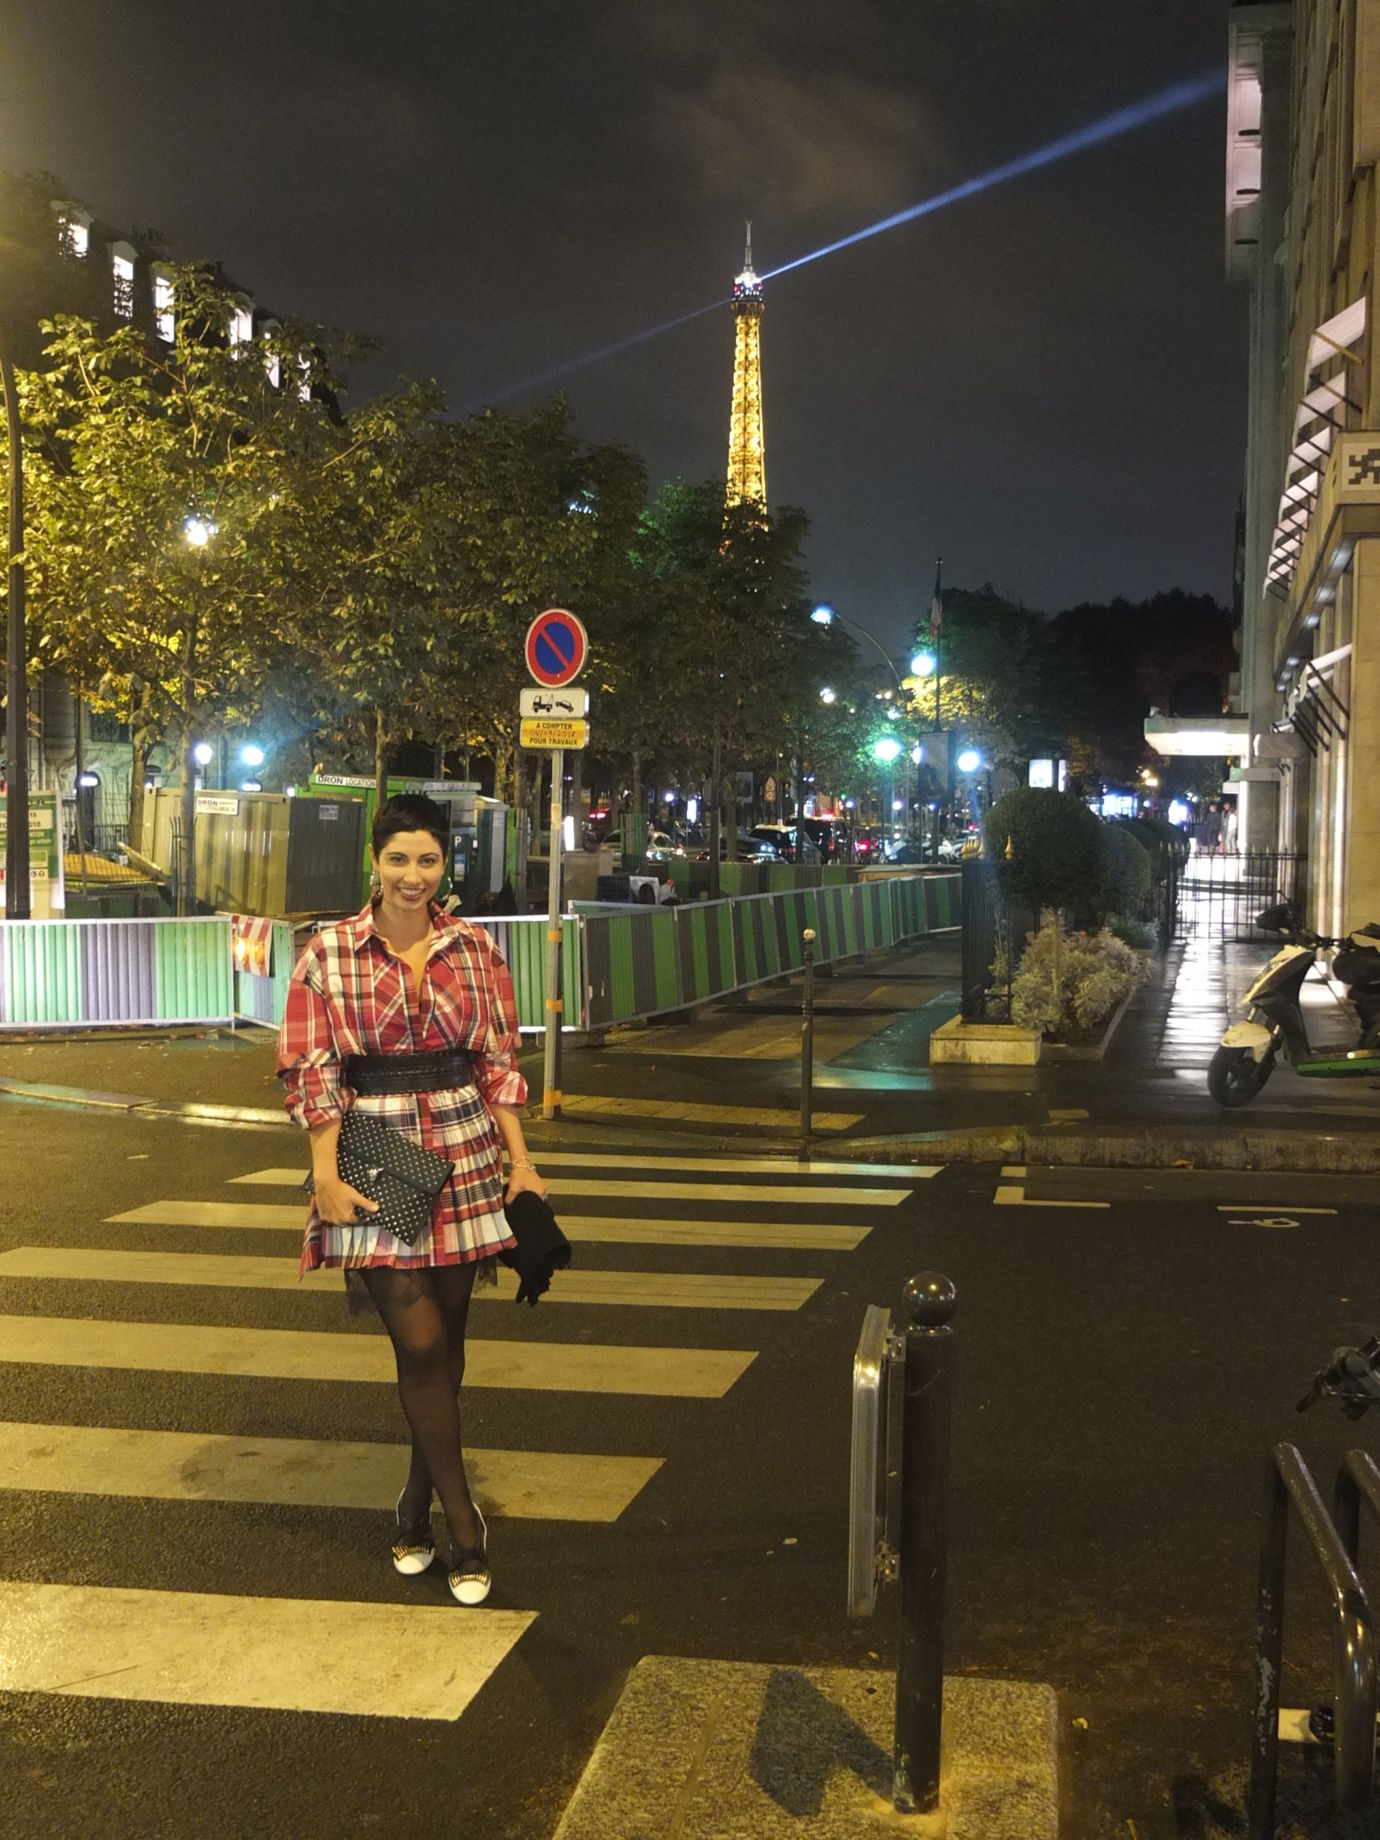 Chrisa Pappas in a pleated check Alexander McQueen mini dress out for a night on the town in Paris.